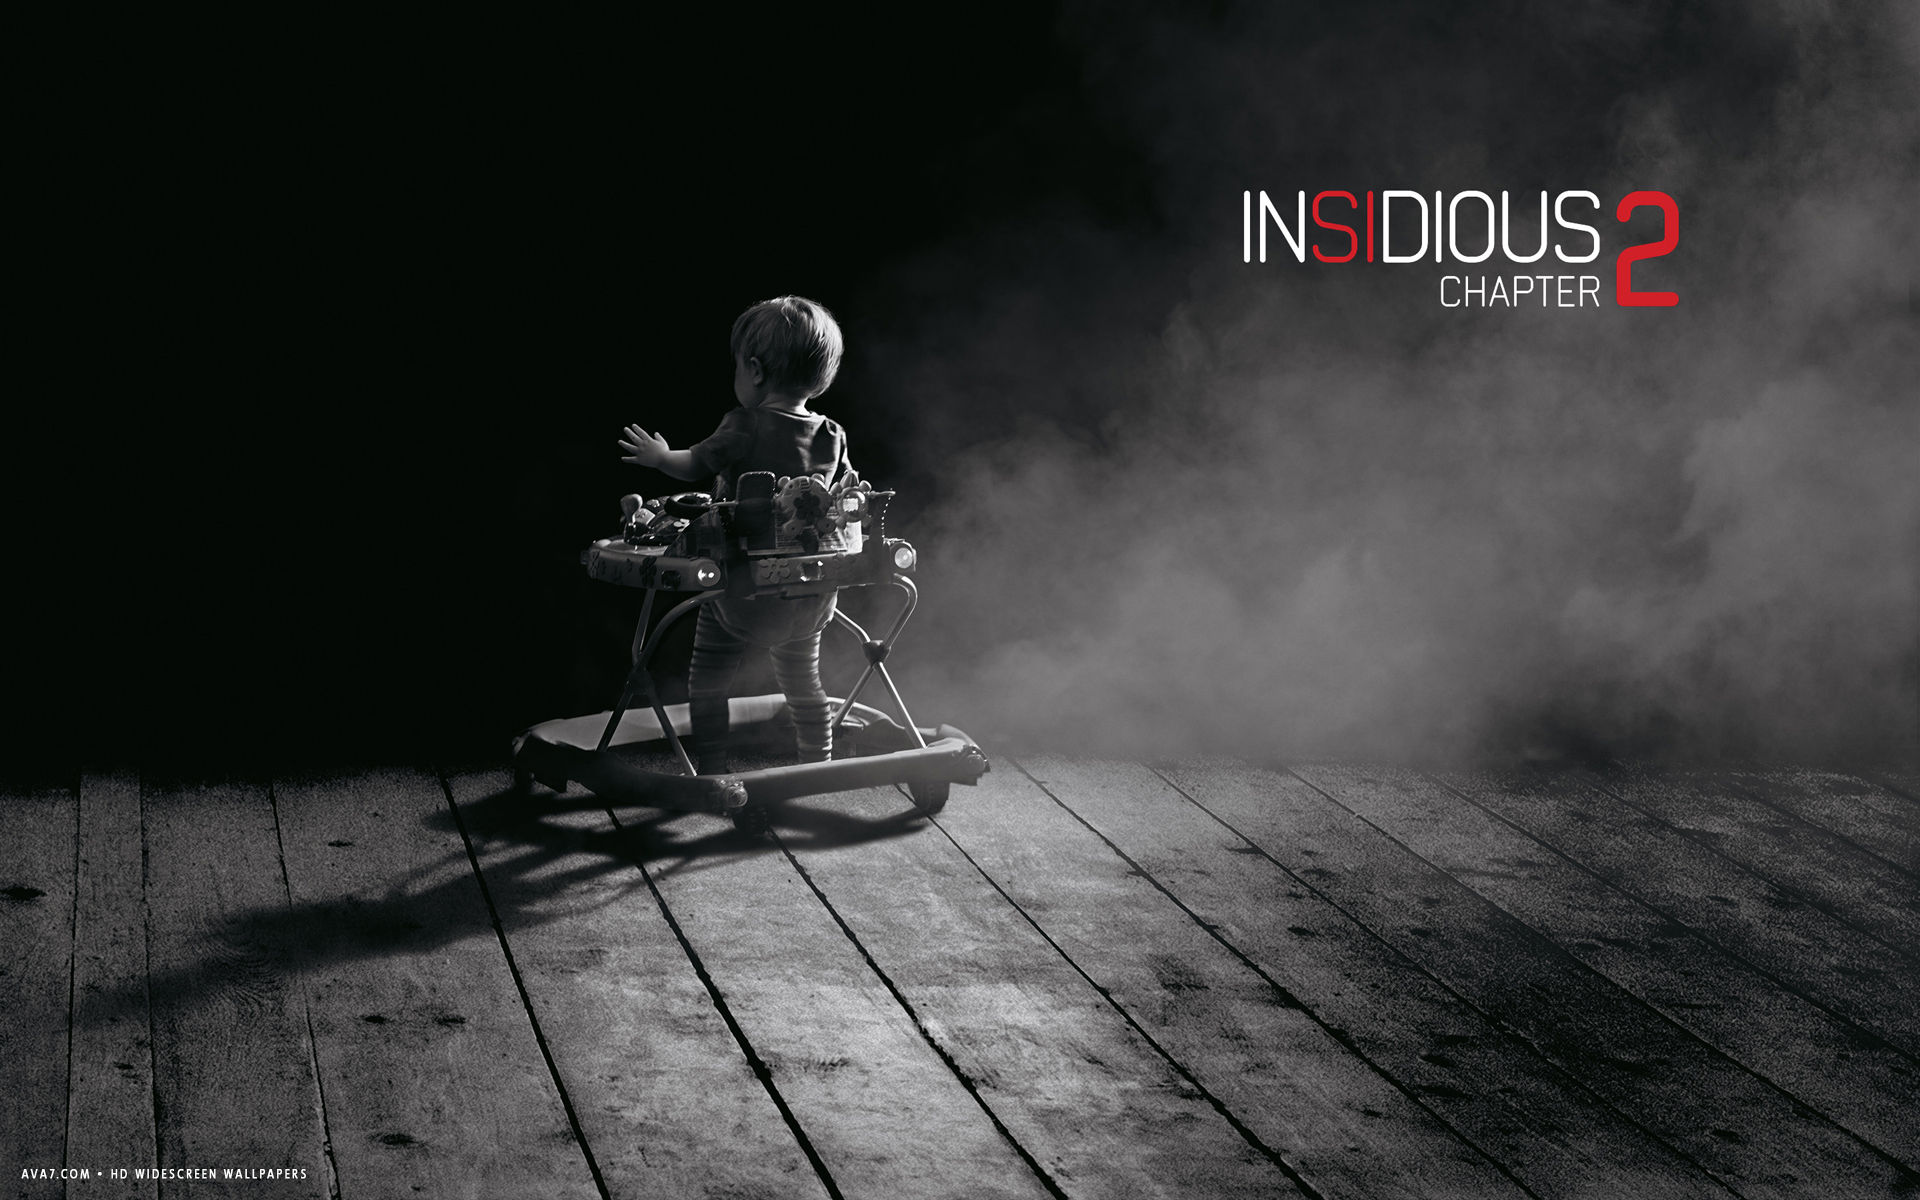 Insidious Chapter 2 Movie Hd Widescreen Wallpaper Movies